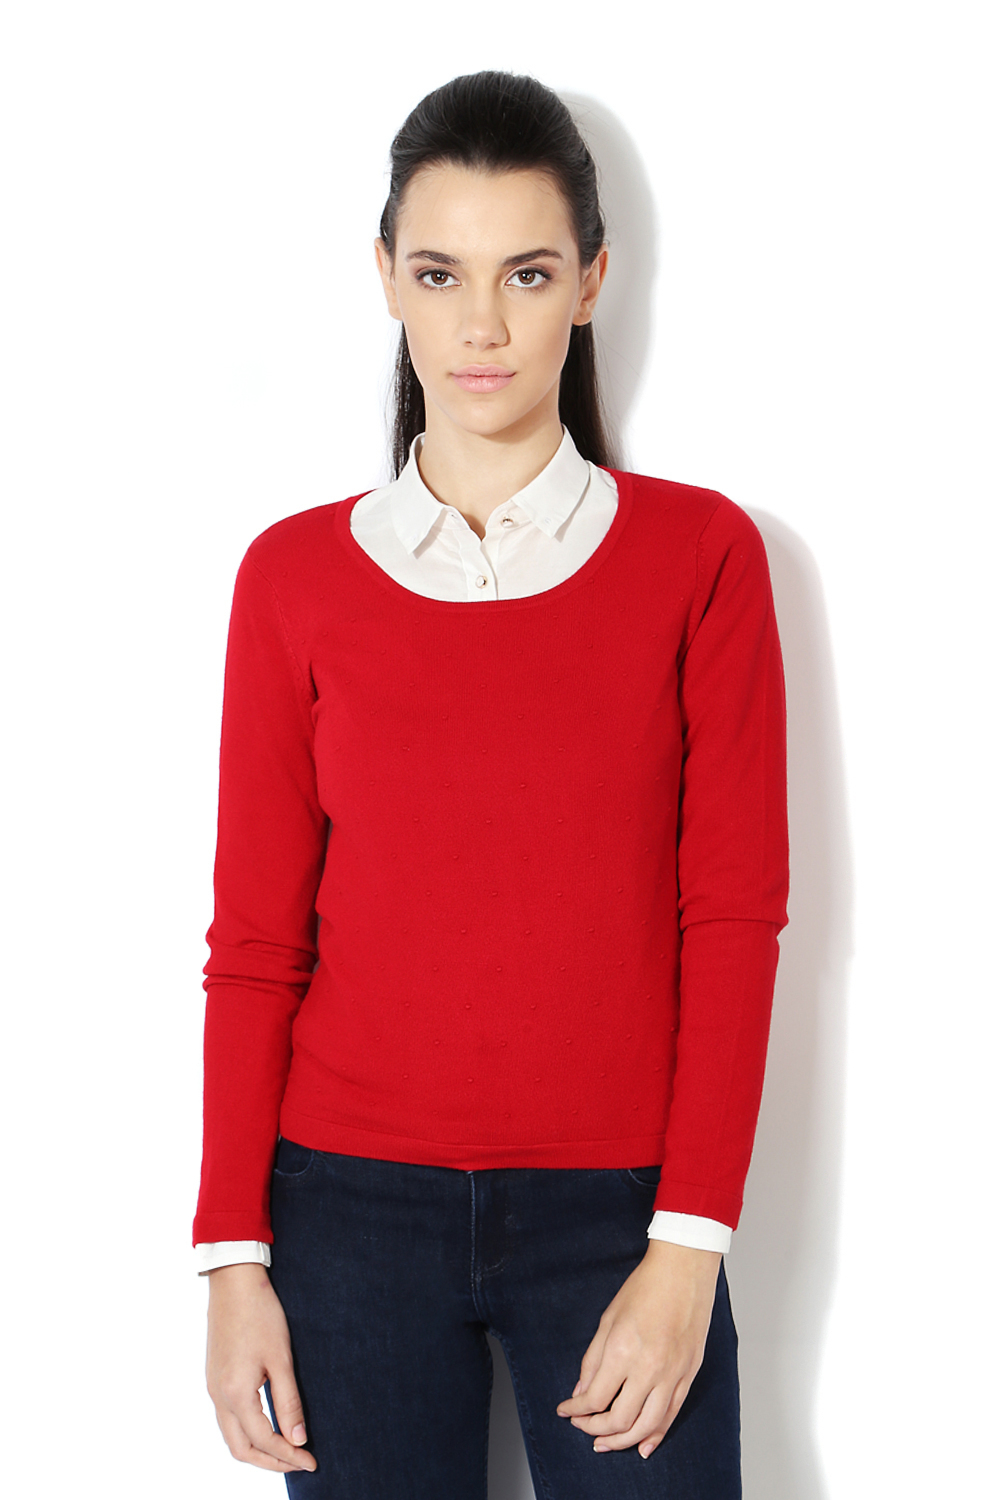 Van Heusen Woman Sweaters & Cardigans, Van Heusen Red Sweater for ...